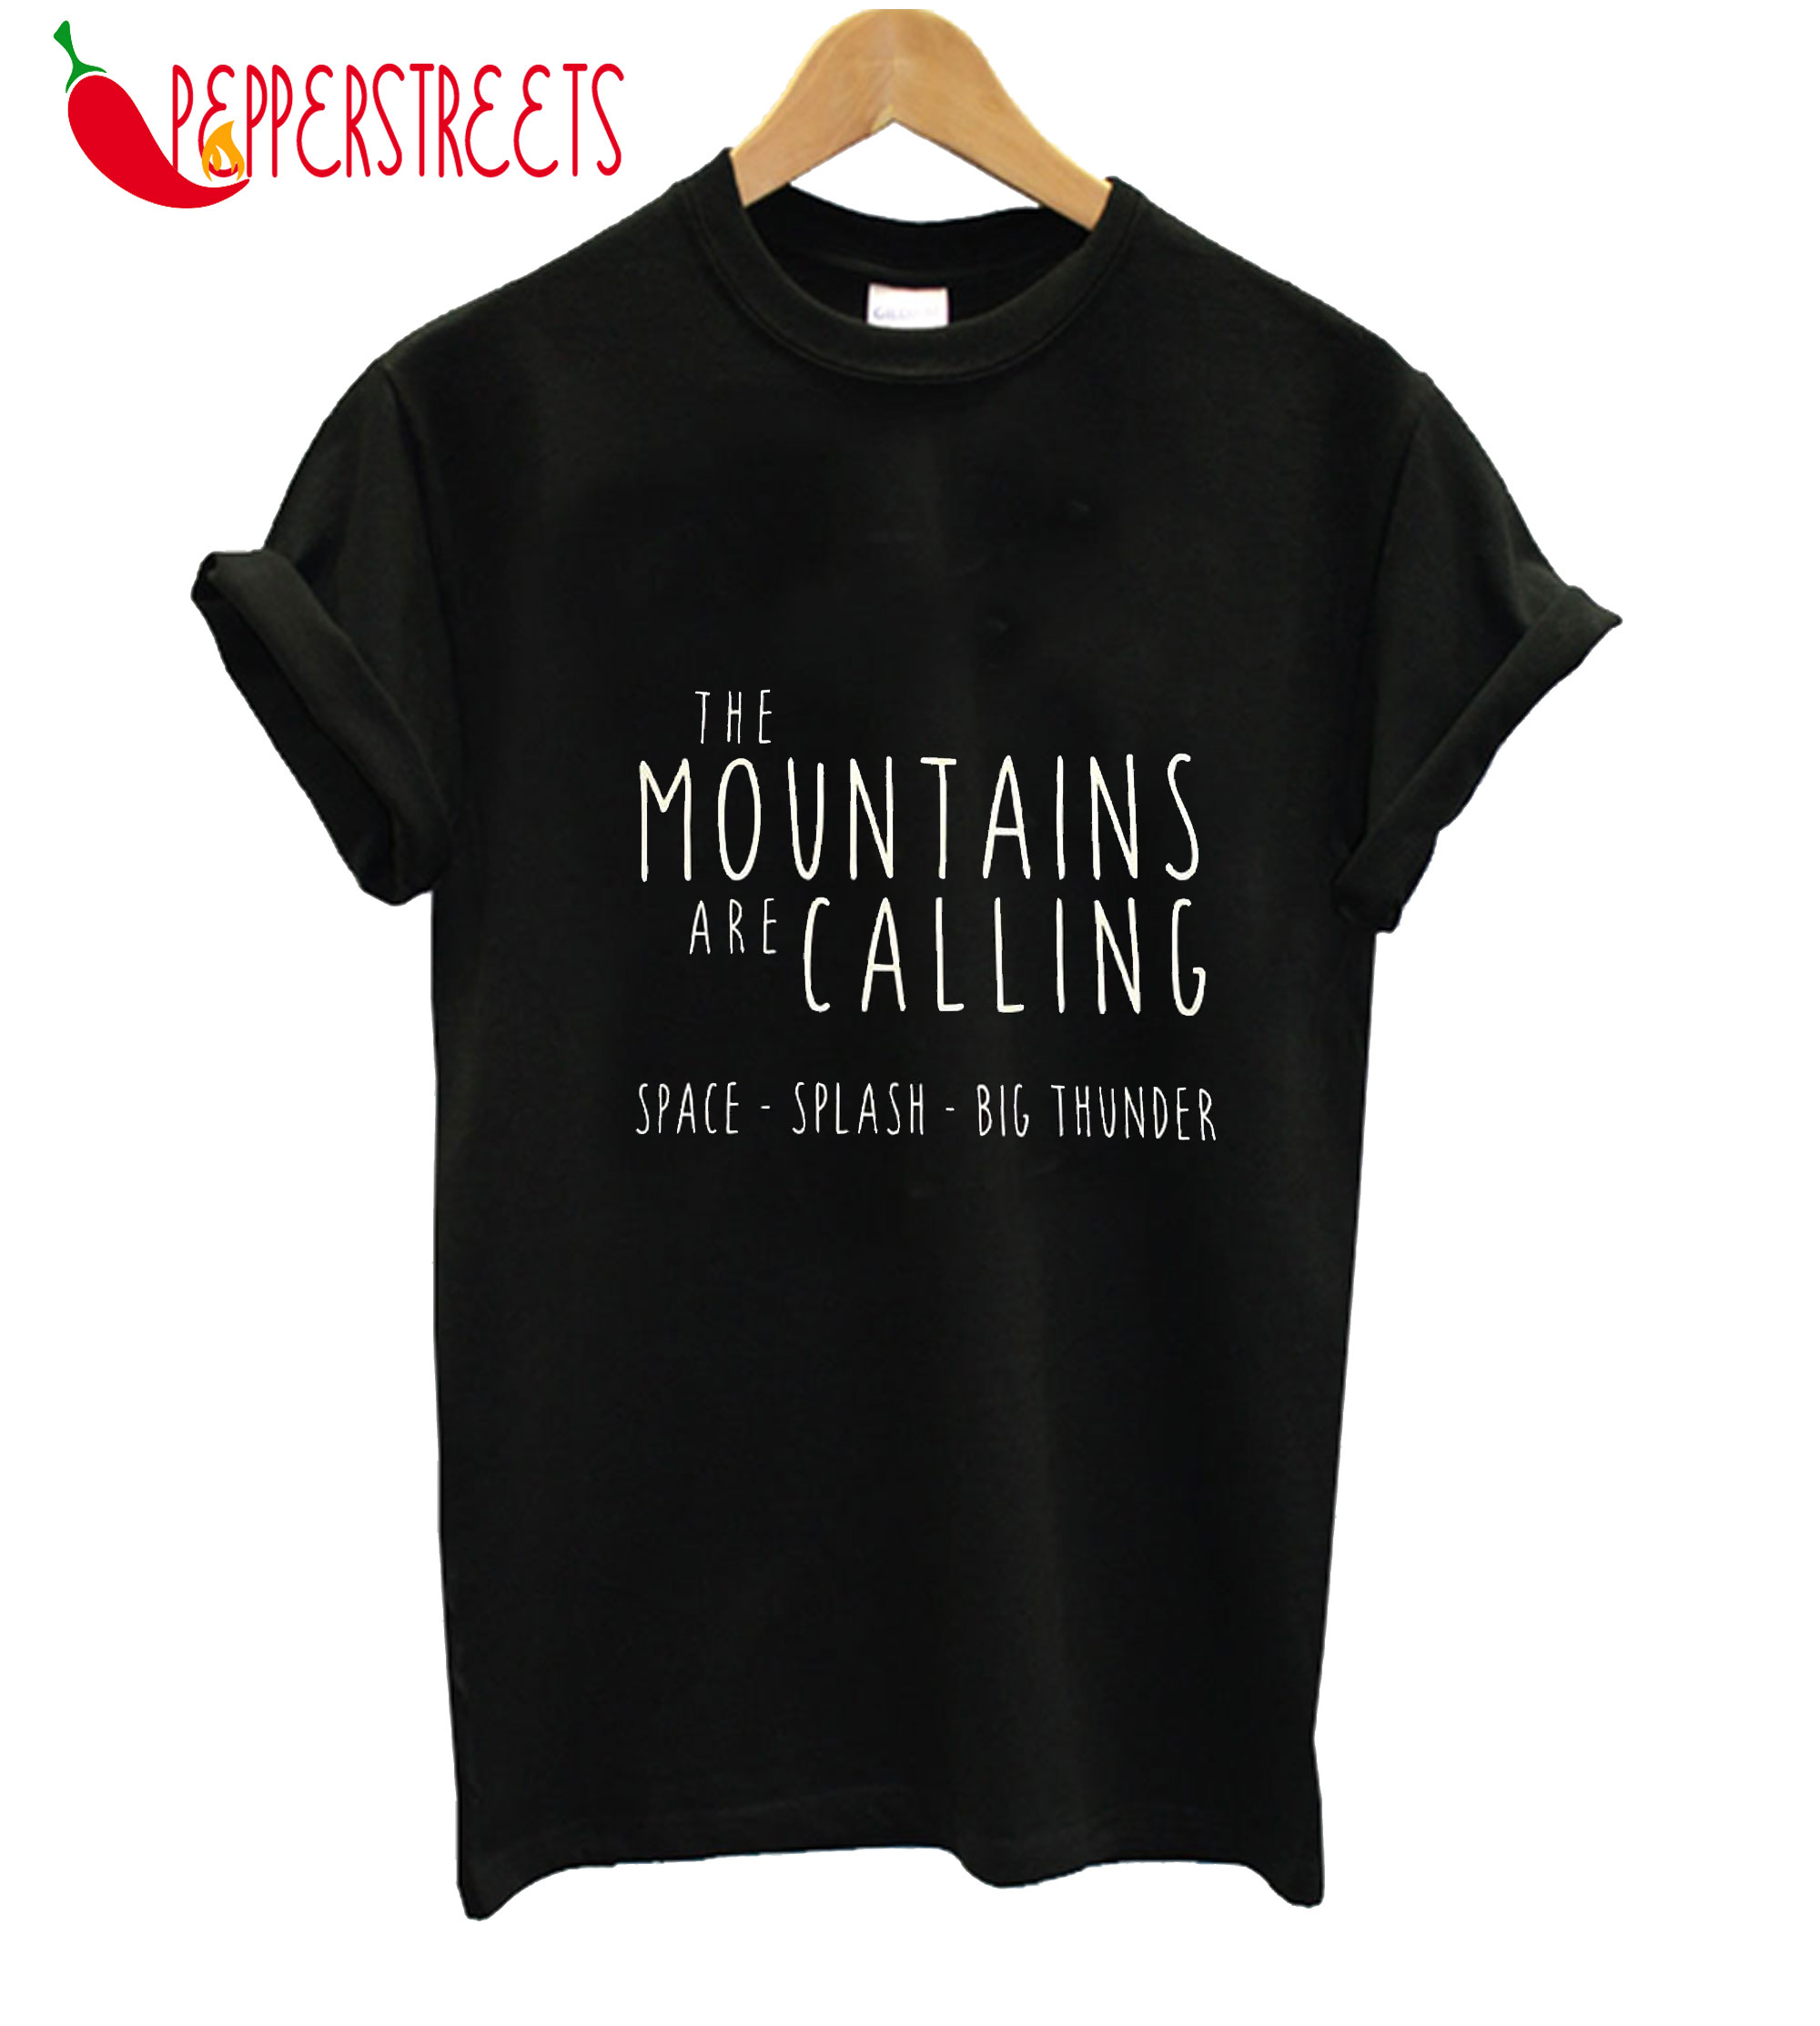 The Disney Mountains Are Calling Crew Neck T-Shirt